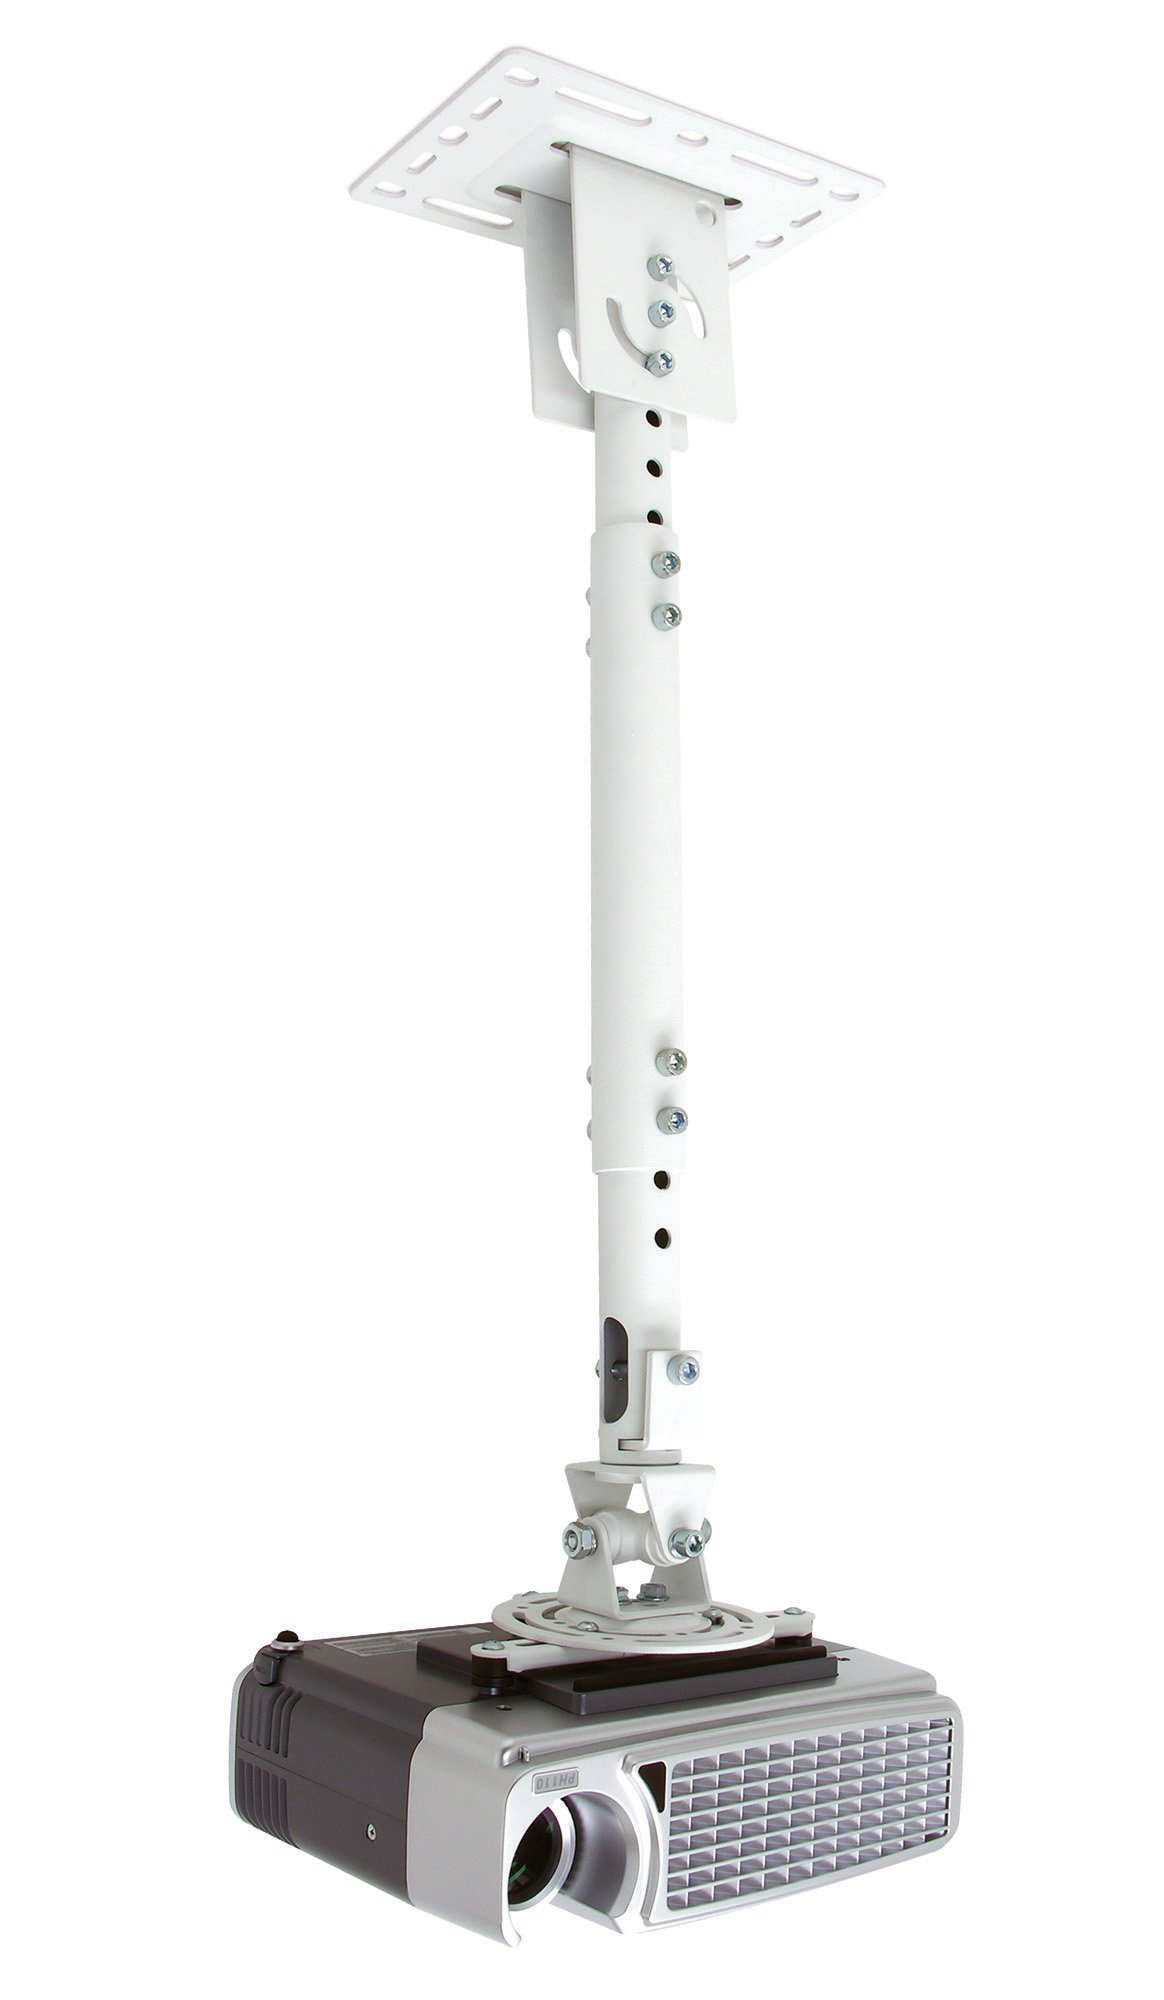 Atdec TH-WH-PJ-CM Height Adjustable Ceiling Projector Mount for Displays up to 33-Pound, White by Atdec